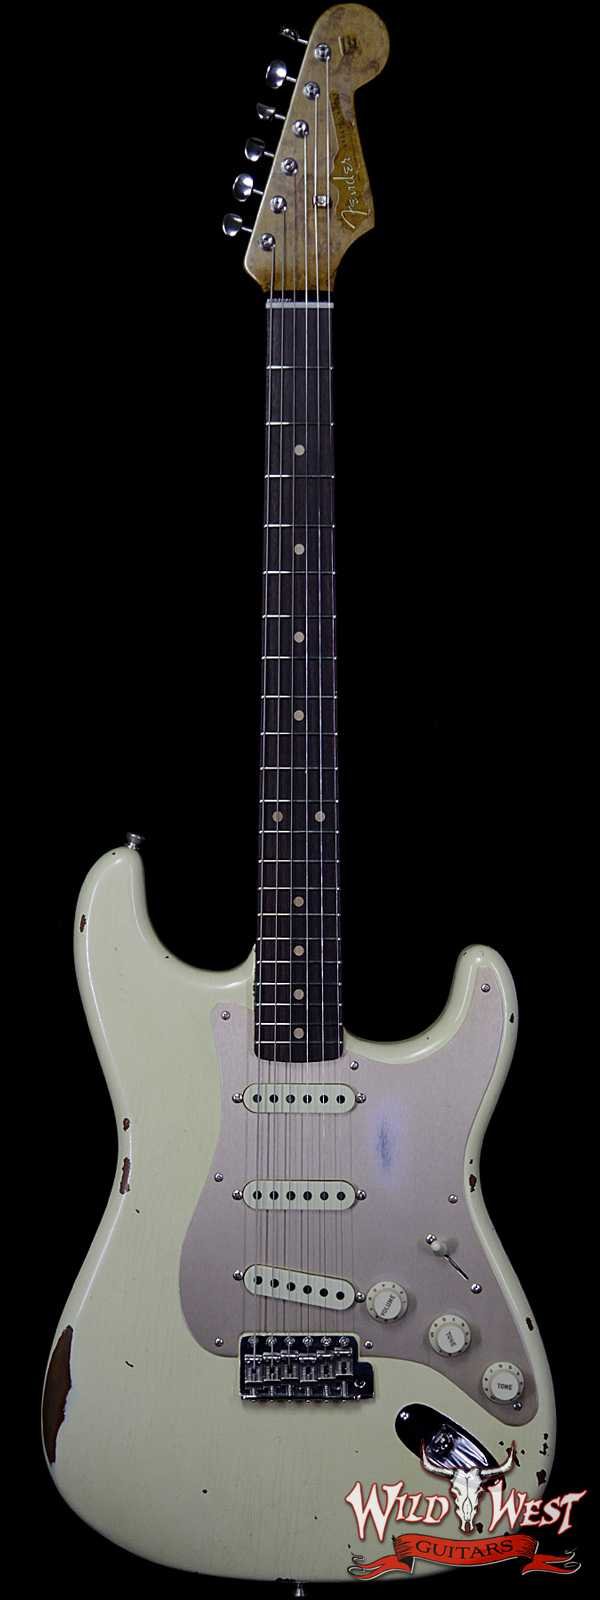 Fender Custom Shop Roasted 1960 Stratocaster Relic Birdseye Maple Neck AAA Rosewood Aged Vintage White